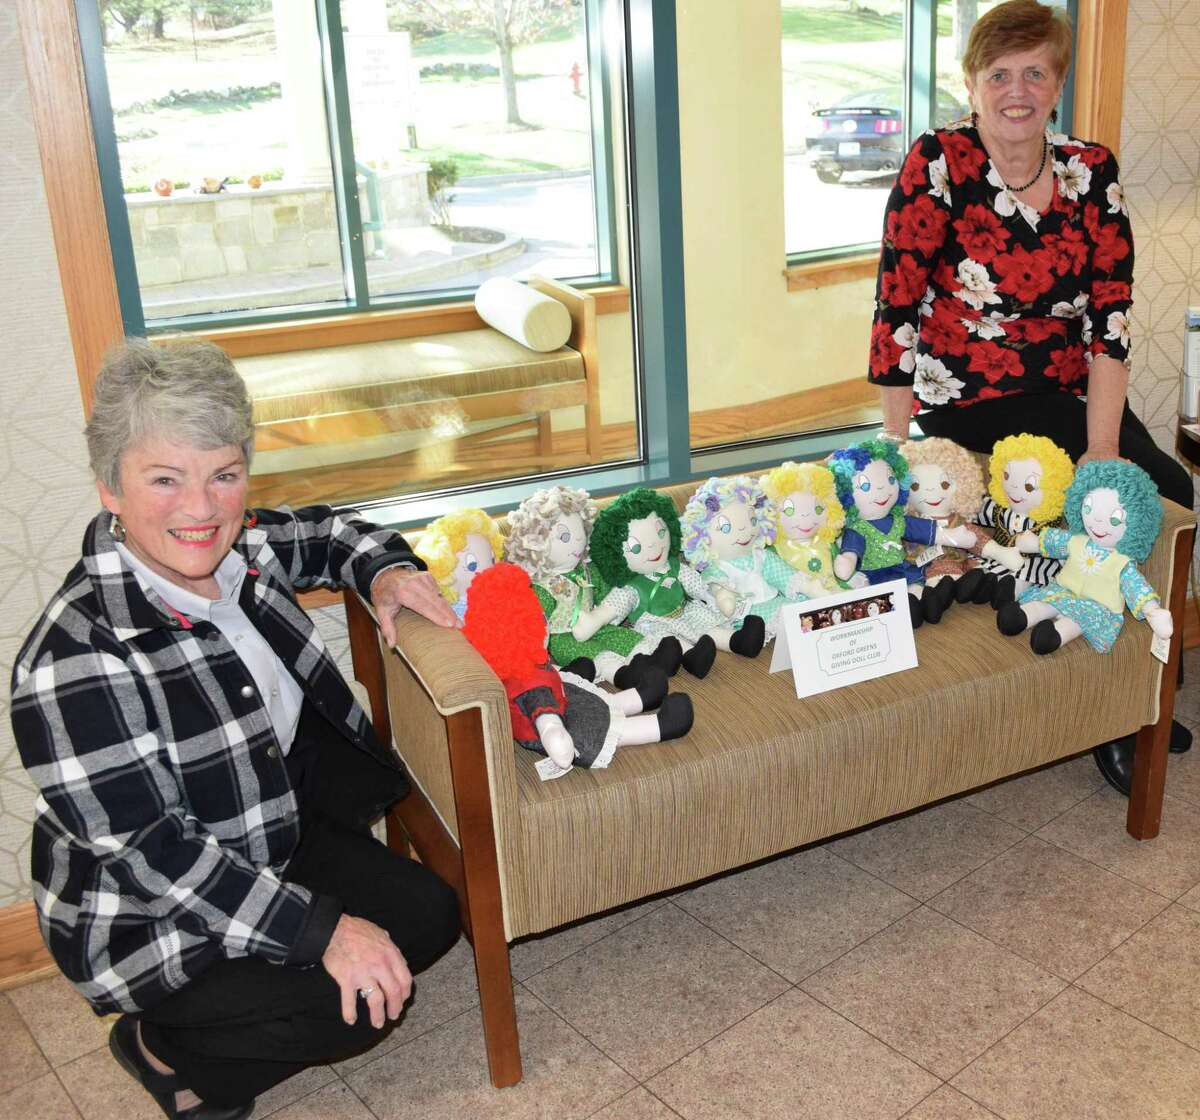 Marilyn DeMarche, left, and Pat Dunton, members of The Giving Doll Club, Oxford Greens Chapter, visit Candlewood Valley Health & Rehabilitation to deliver Sunset Dolls to residents.